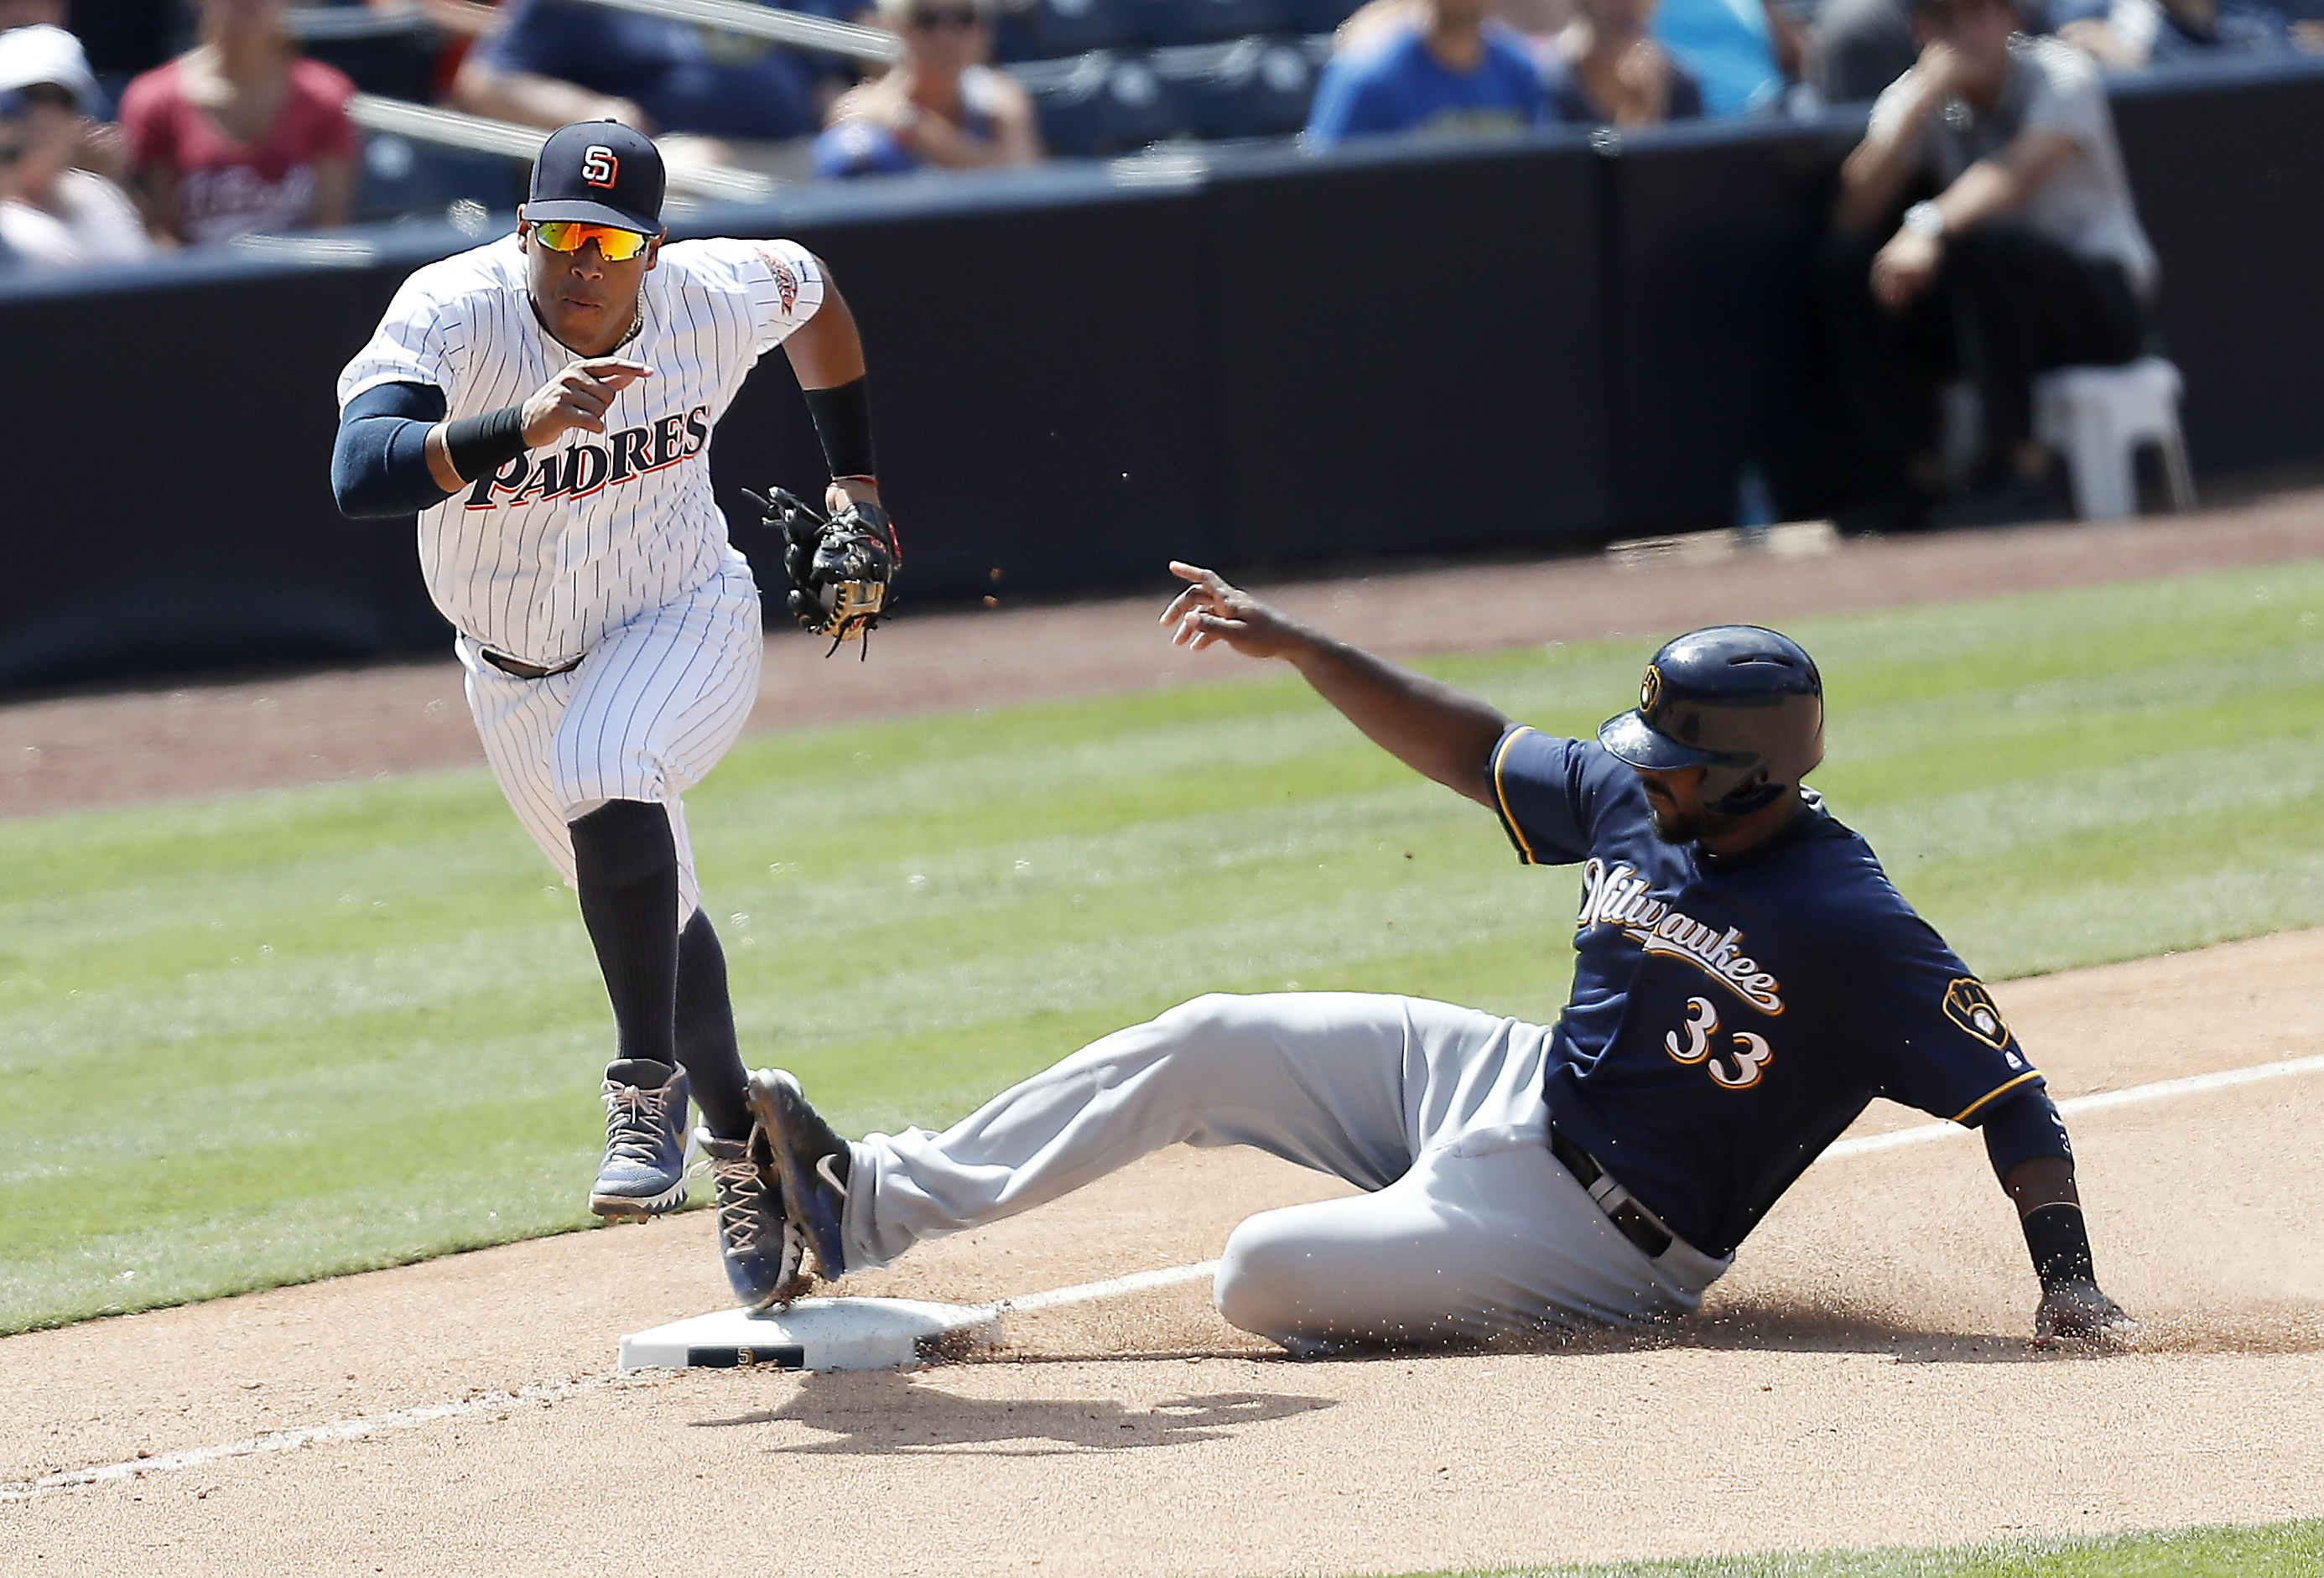 San Diego Padres third baseman Yangervis Solarte runs towards the dugout after getting Milwaukee Brewers first baseman Chris Carter out at third base during the seventh inning of a baseball game, Wednesday, Aug. 3, 2016, in San Diego. (AP Photo/Ryan Kang)